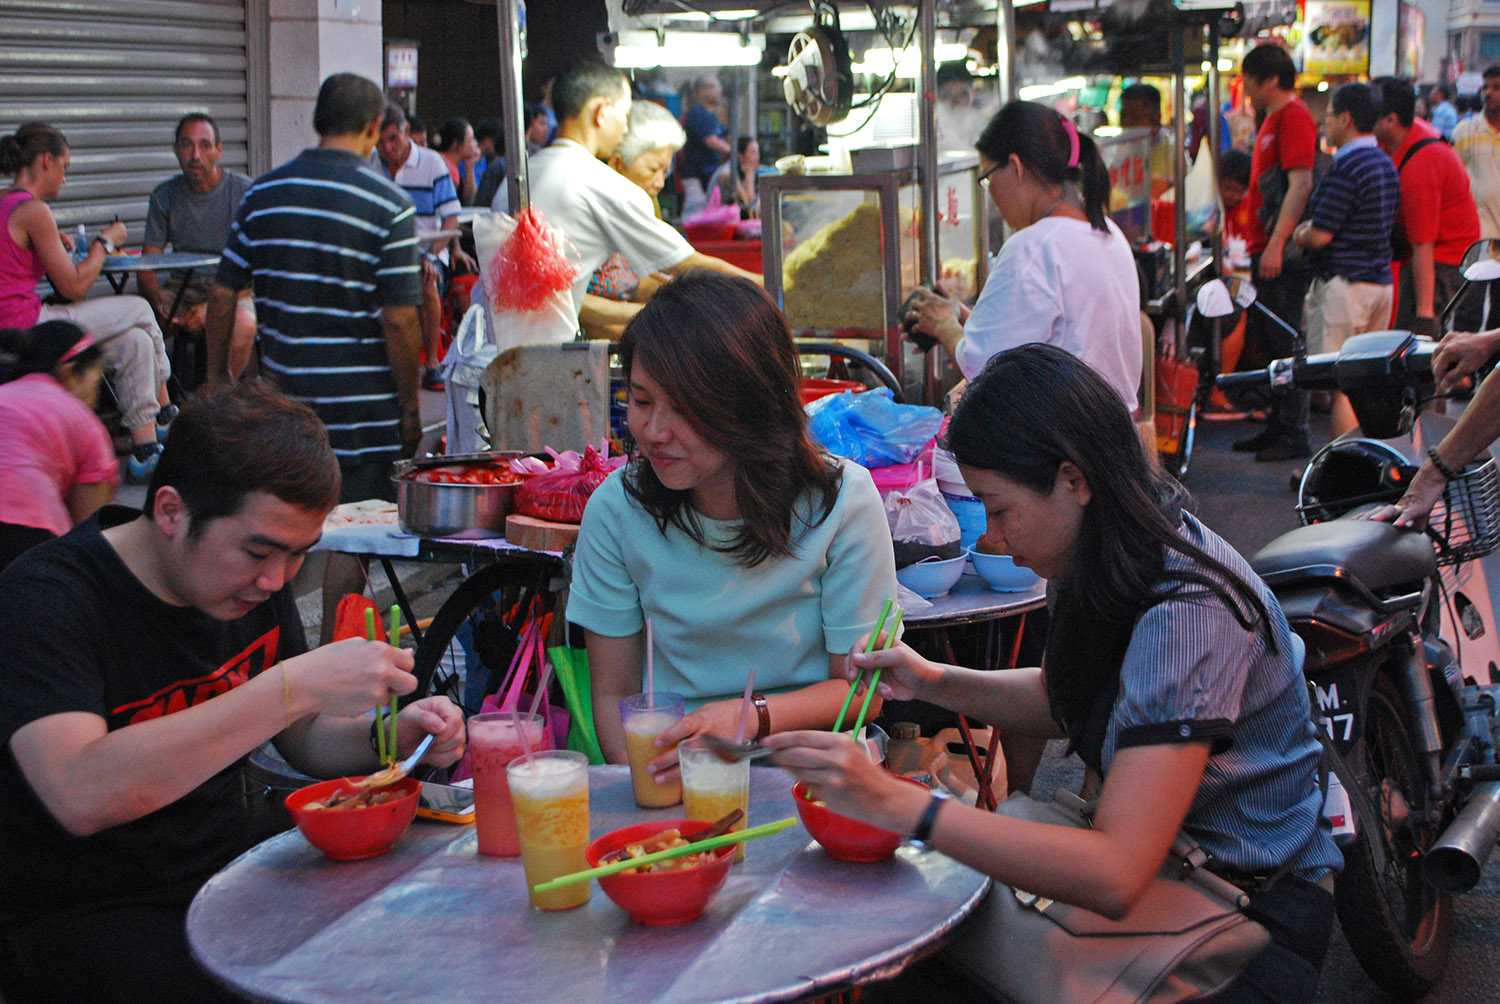 Diners chowing down on Lebuh Chulia